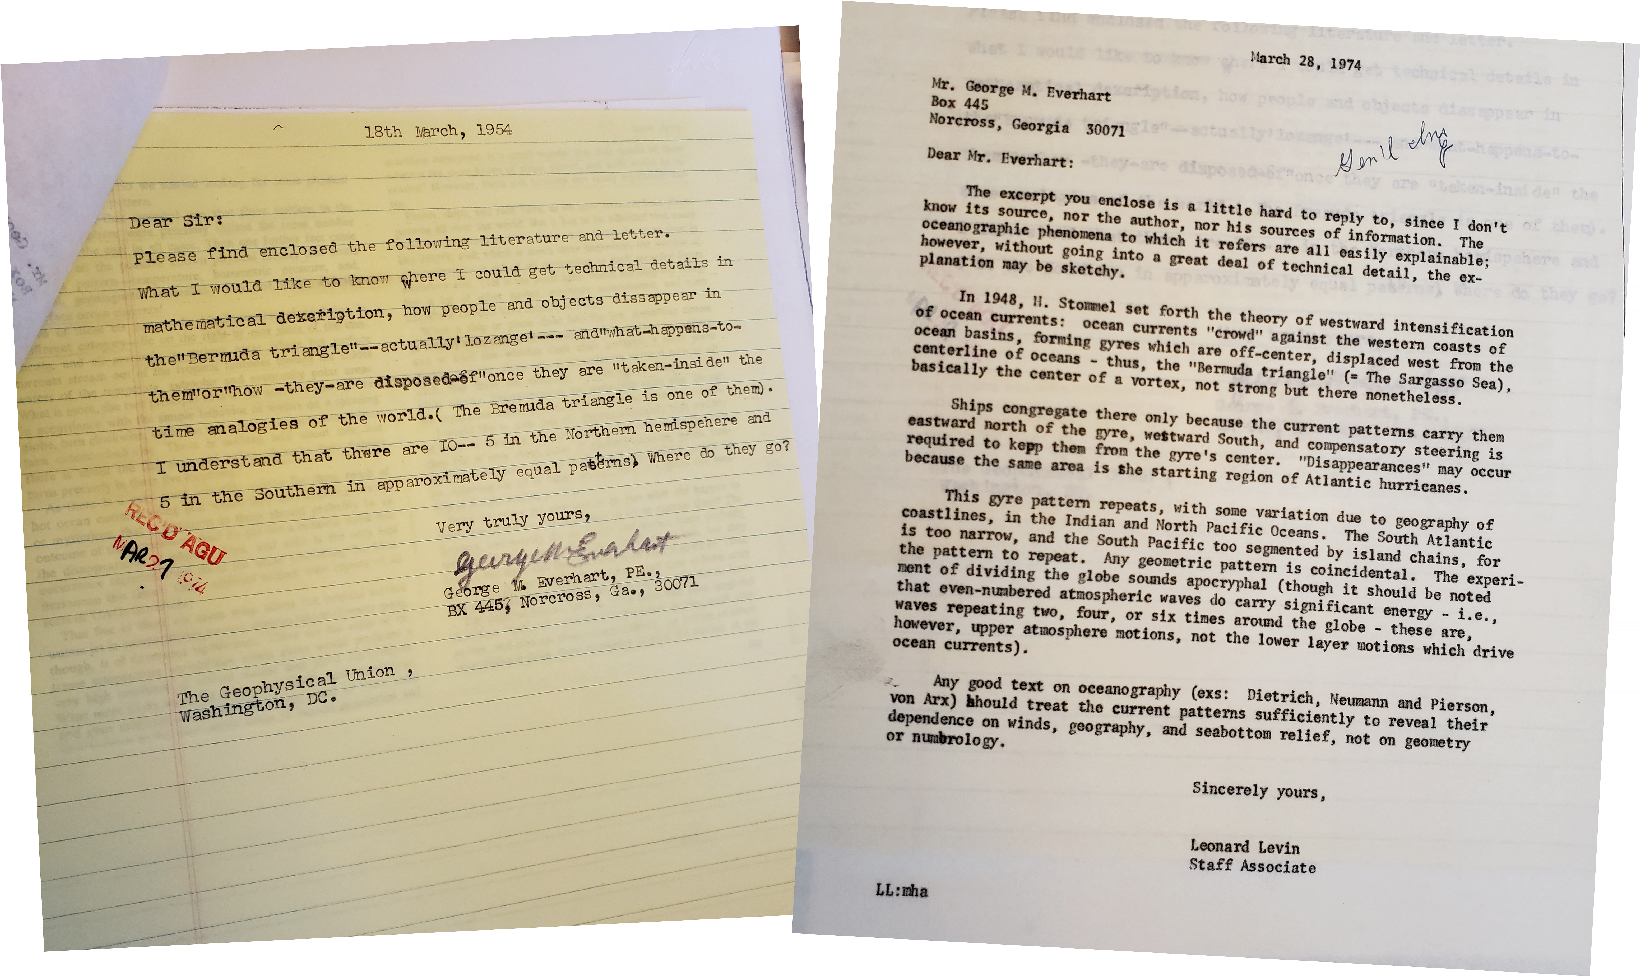 March 1974 letter (misdated 1954) from George Everhart to AGU requesting information about the Bermuda Triangle (left). March 1974 letter from AGU to George Everhart responding to questions about the Bermuda Triangle (right).